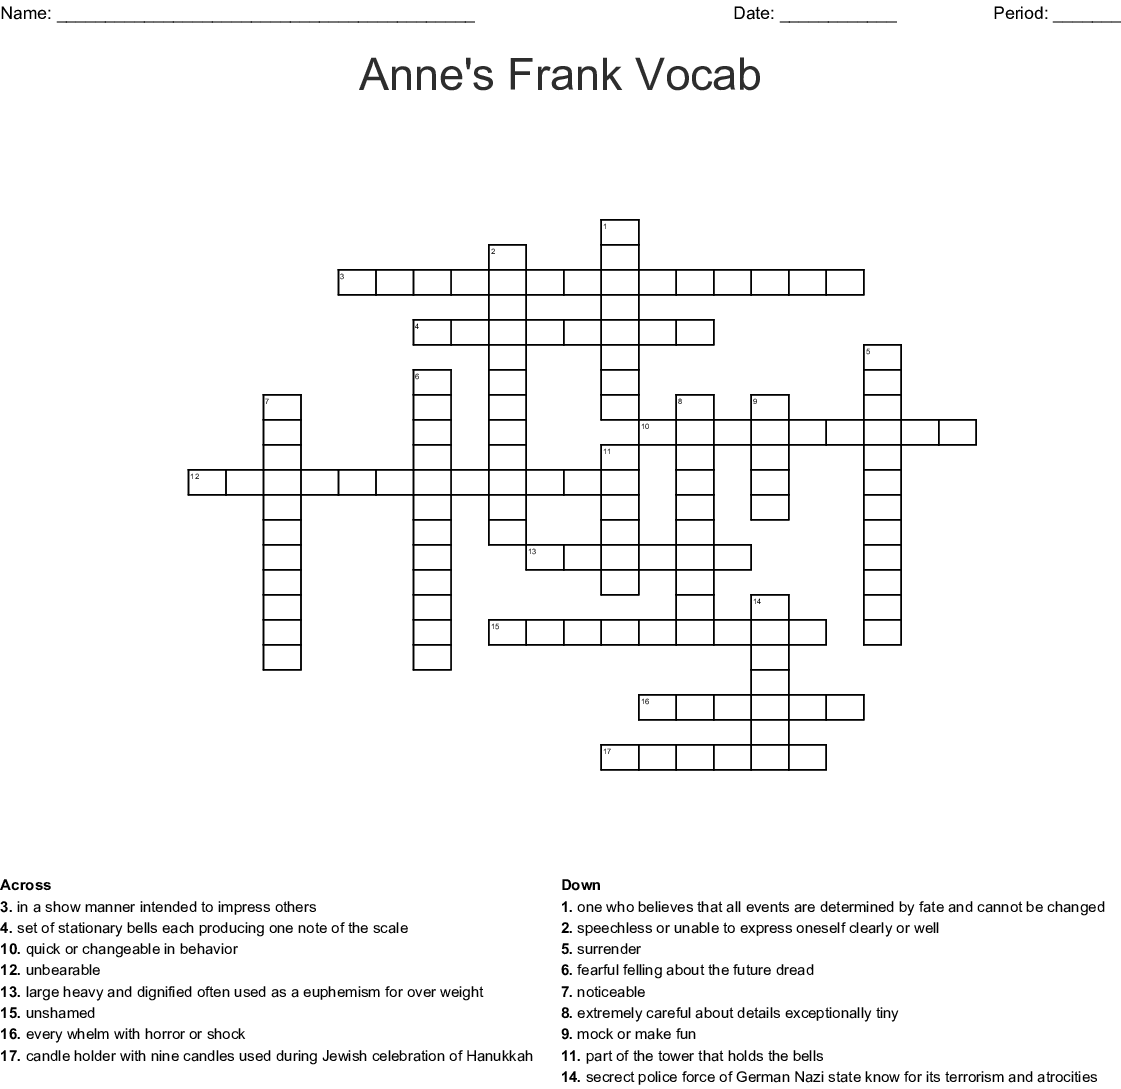 The Diary of Anne Frank Crossword - WordMint